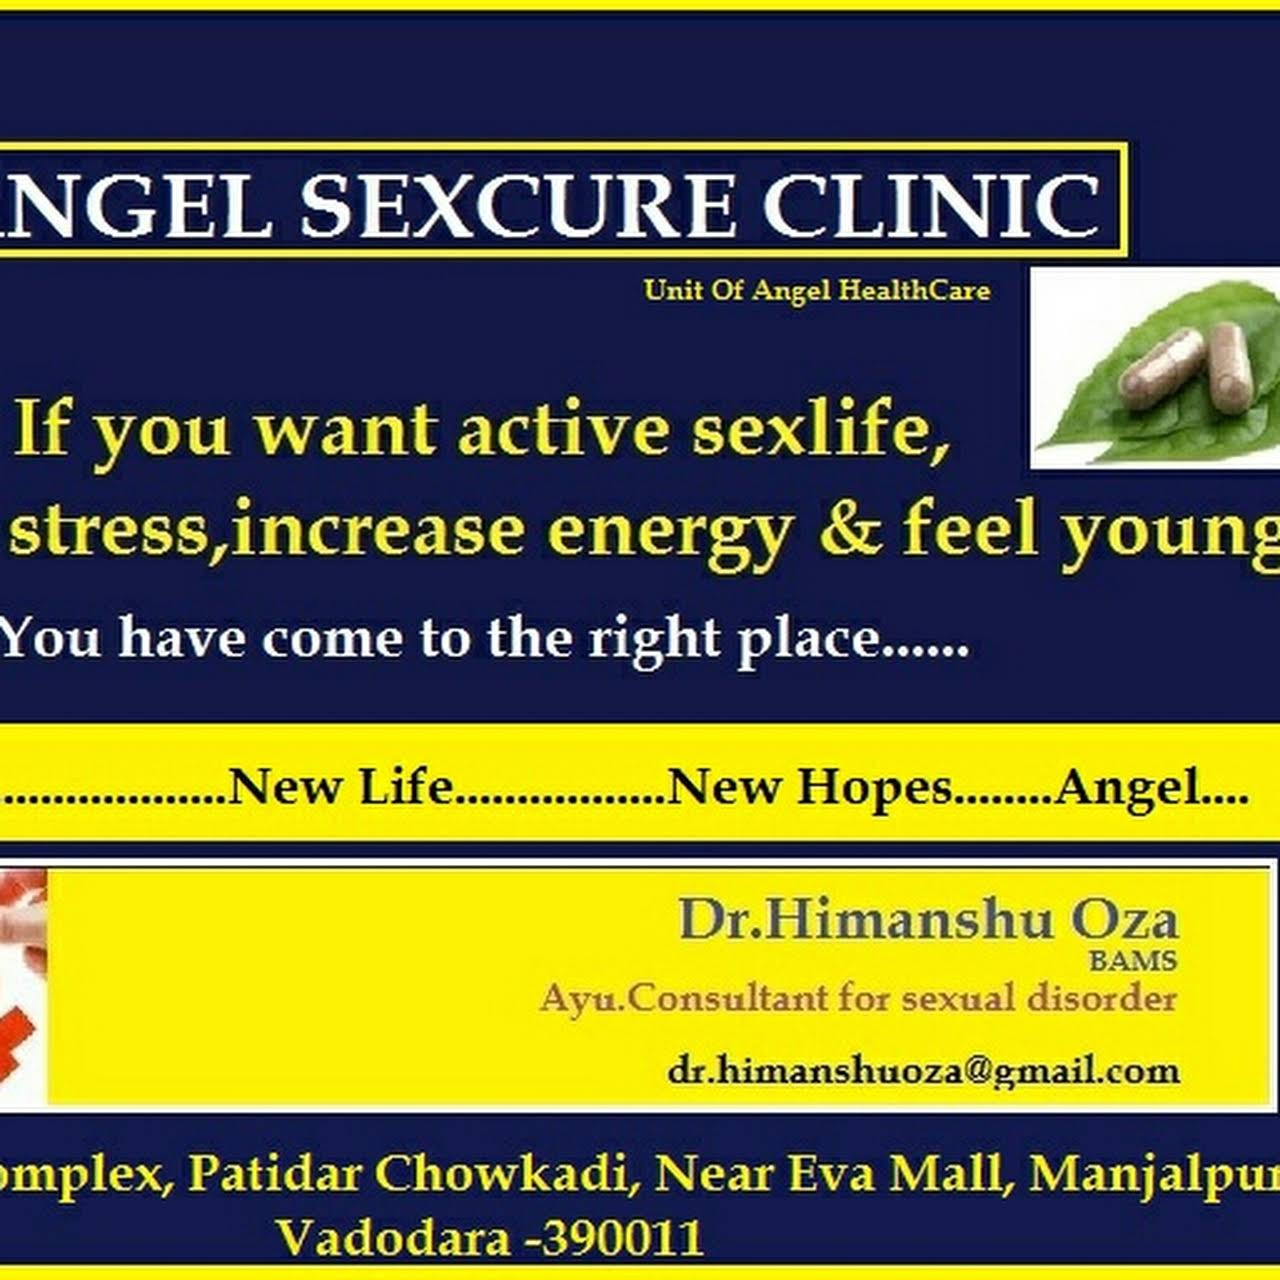 Angel Sexcure Clinic